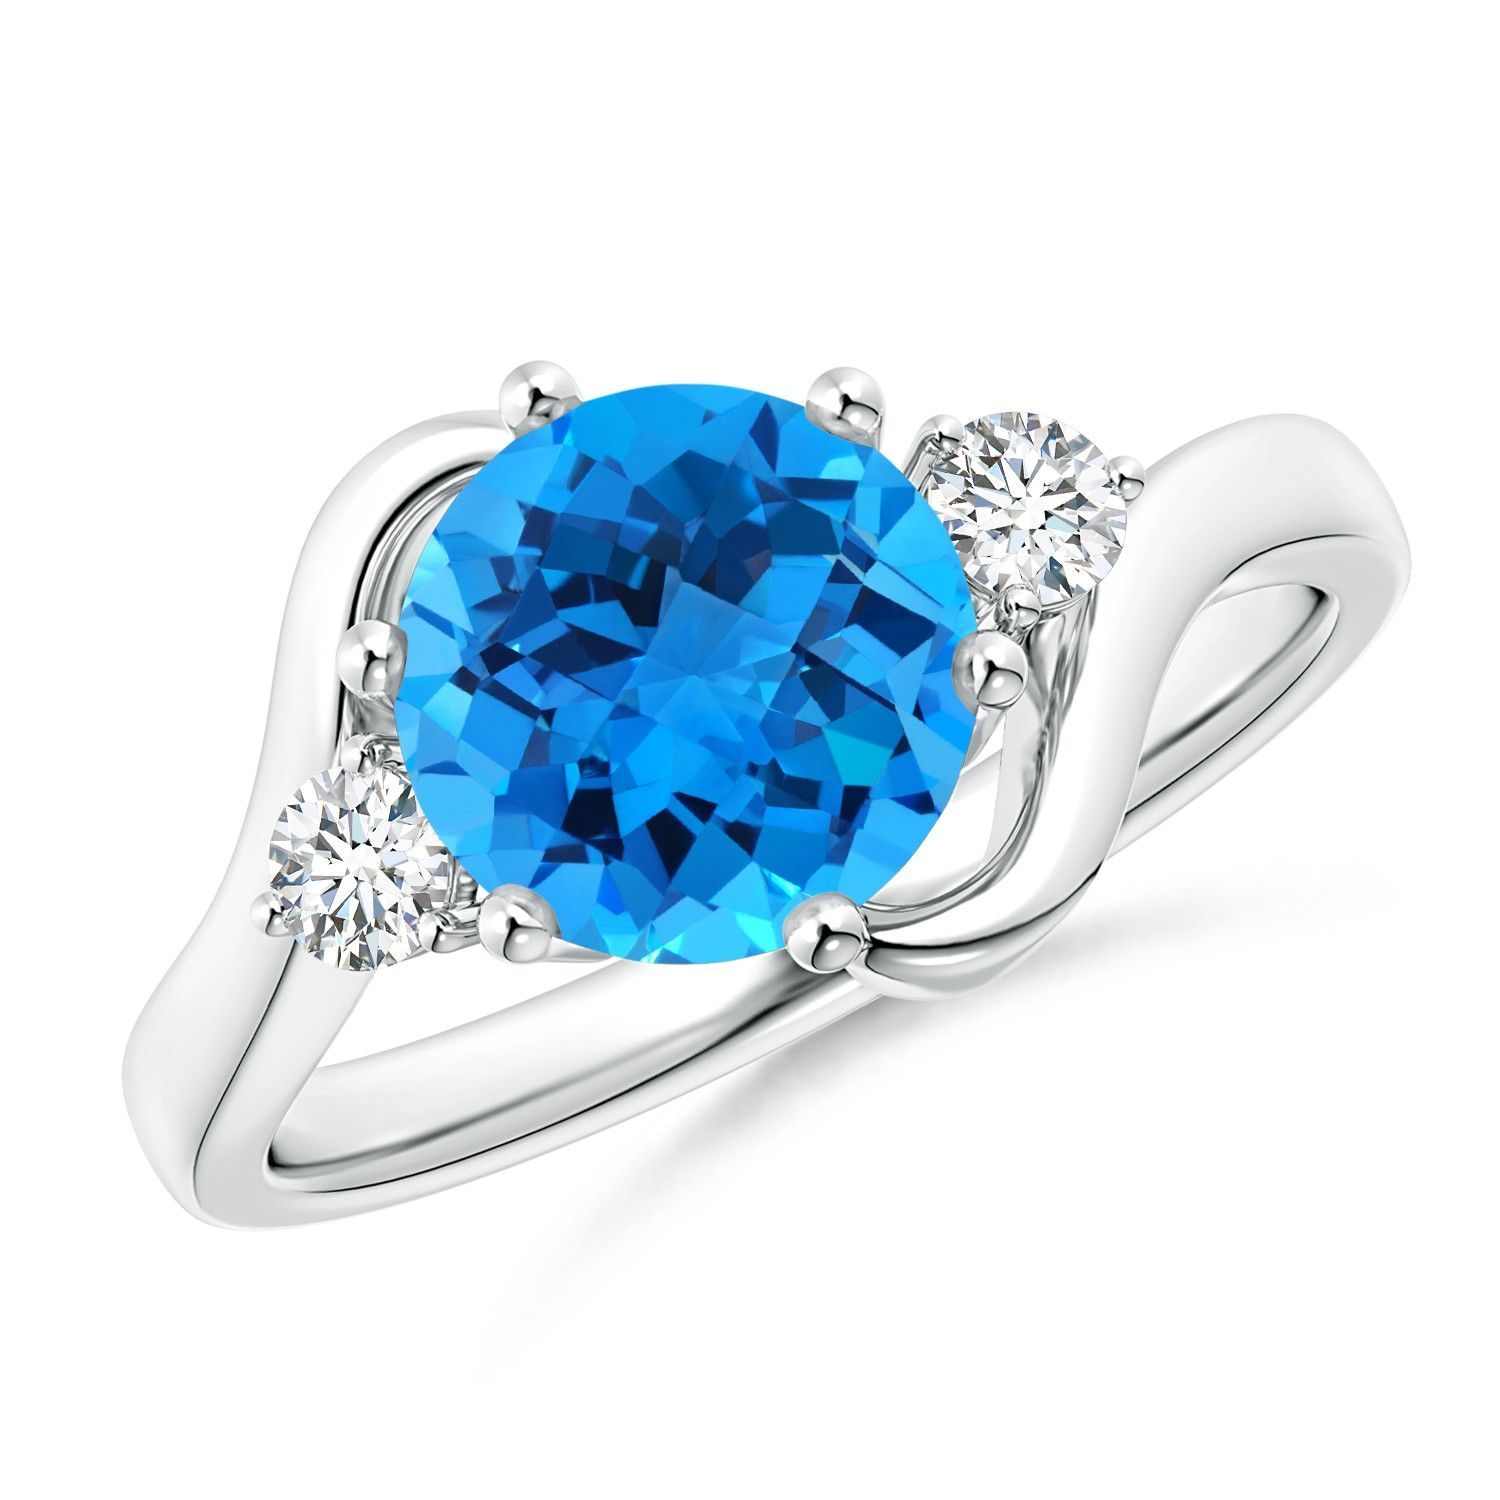 Angara Oval Swiss Blue Topaz Diamond Halo Engagement Ring in White Gold sKLy3yL